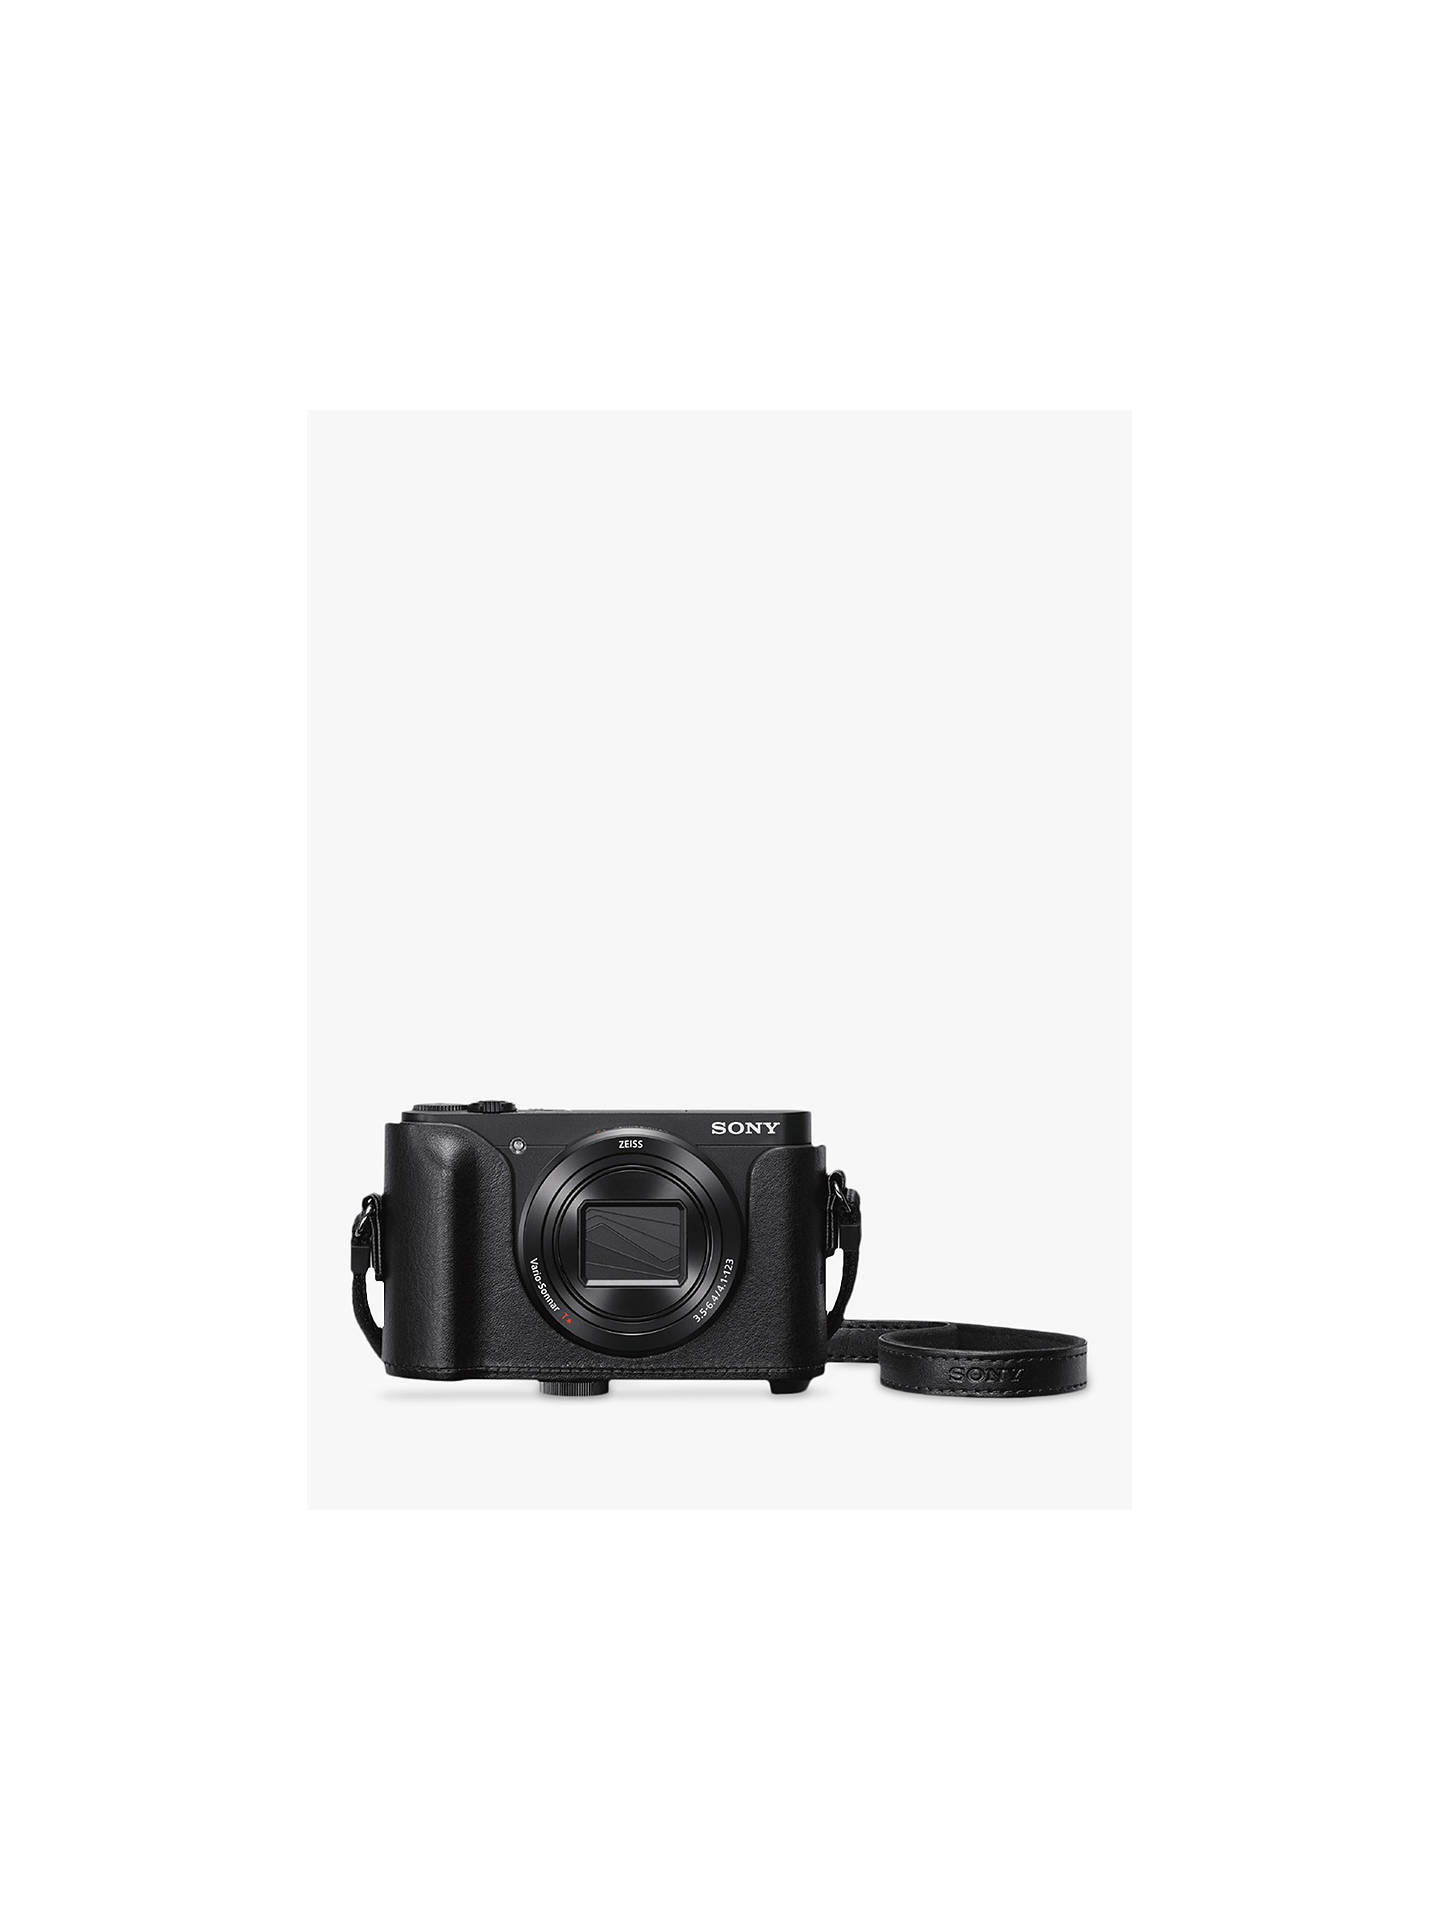 "Buy Sony Cyber-Shot WX500 Camera, HD 1080p, 18.2MP, 30x Optical Zoom, Wi-Fi, NFC, 3"" Vari Angle LCD Screen, Black, with Jacket Camera Case Online at johnlewis.com"